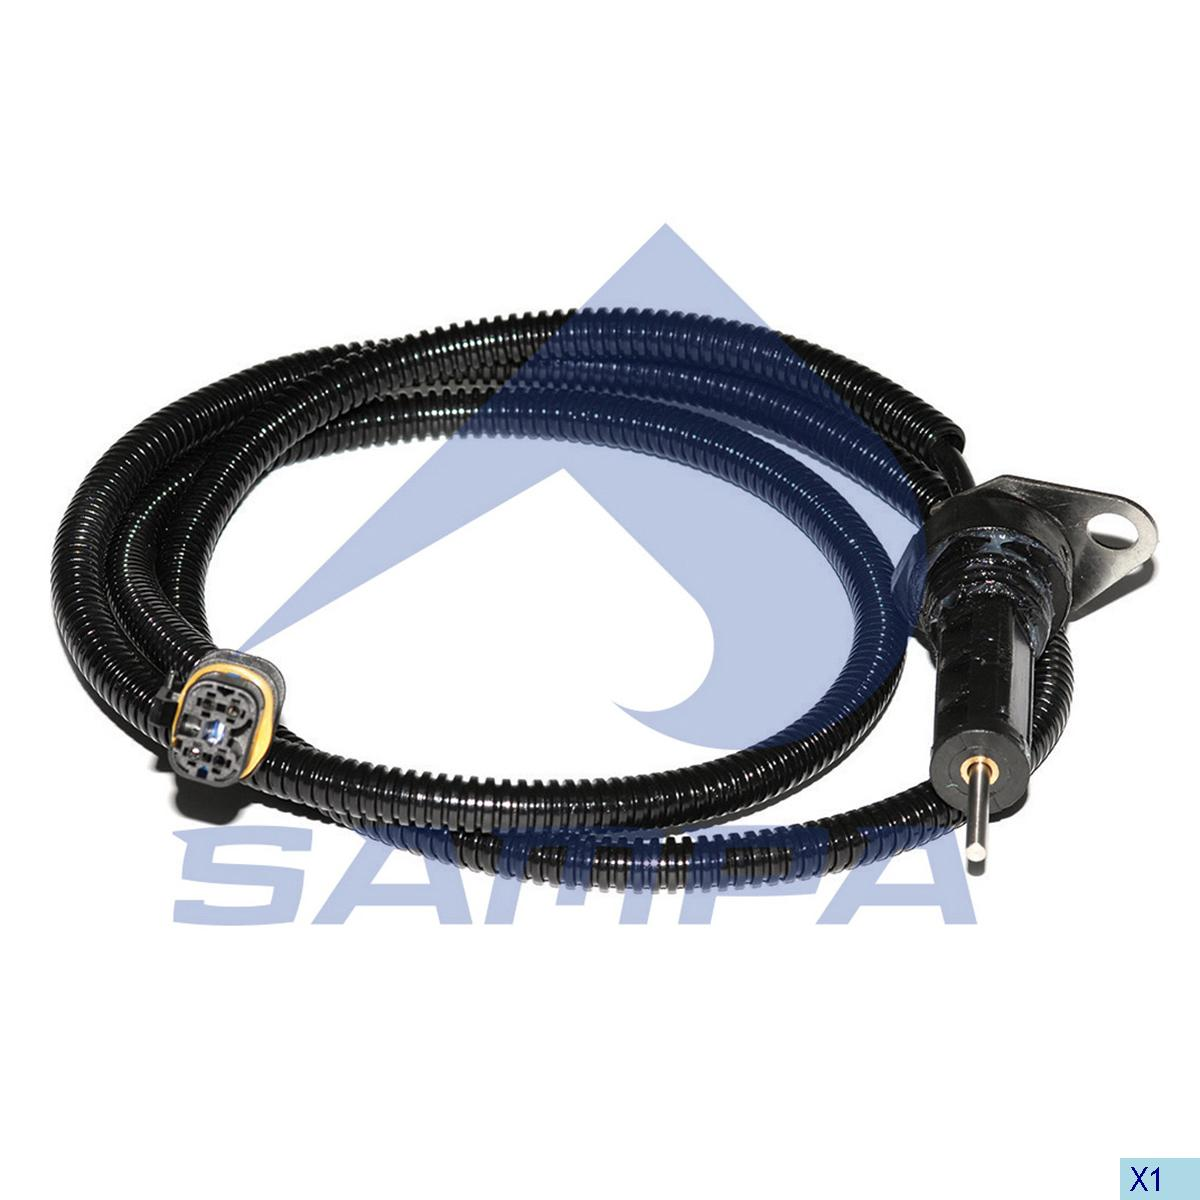 Sensor, Brake Disc Pad, Man, Brake